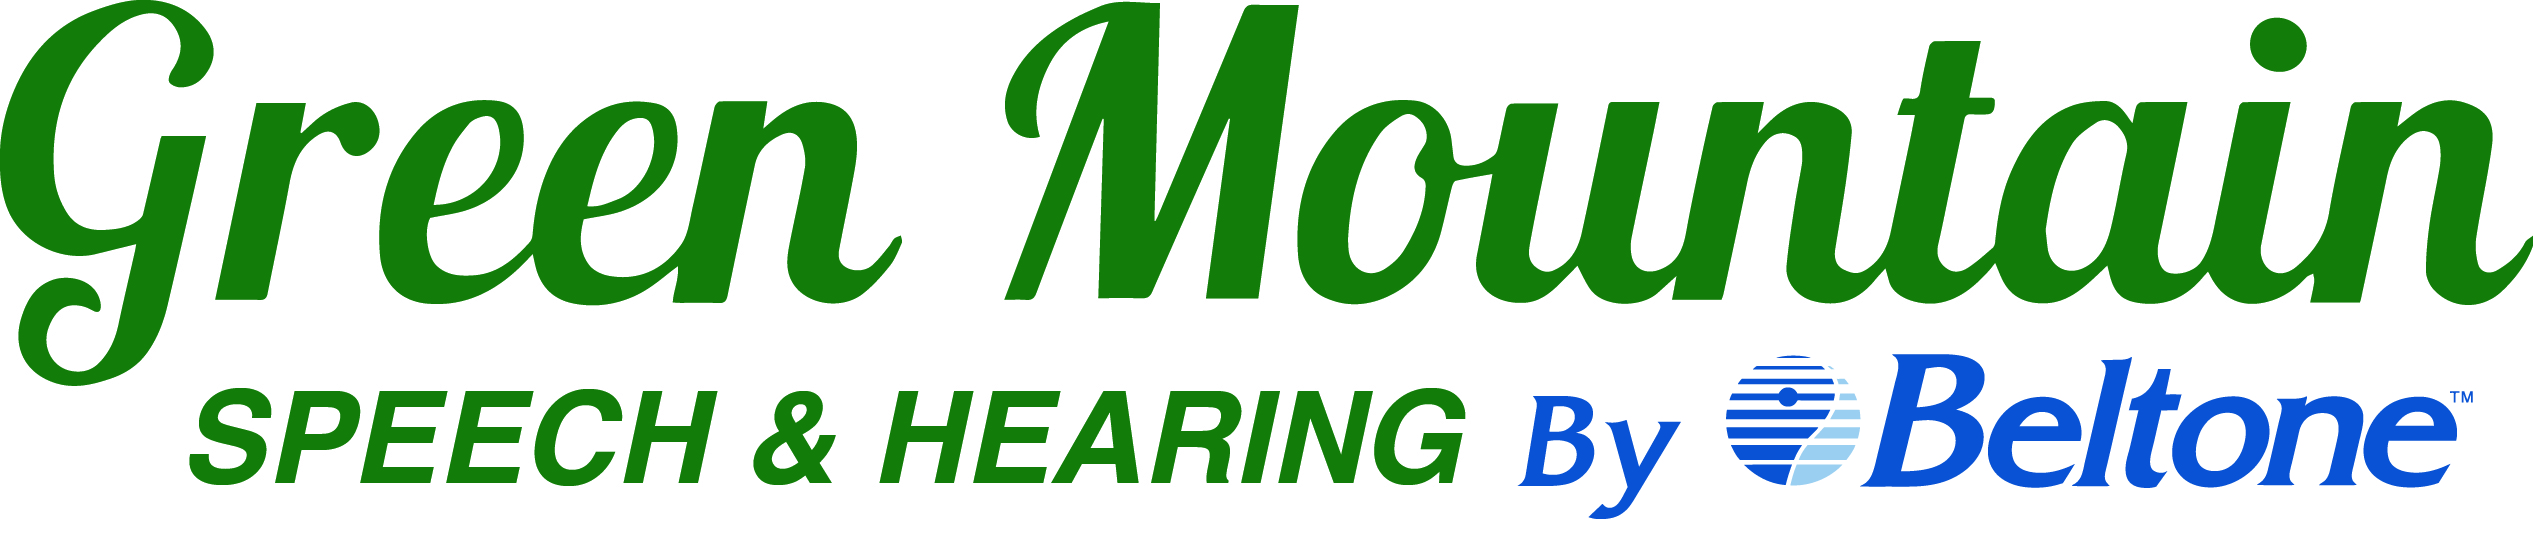 Green Mountain Speech & Hearing Services, Inc.